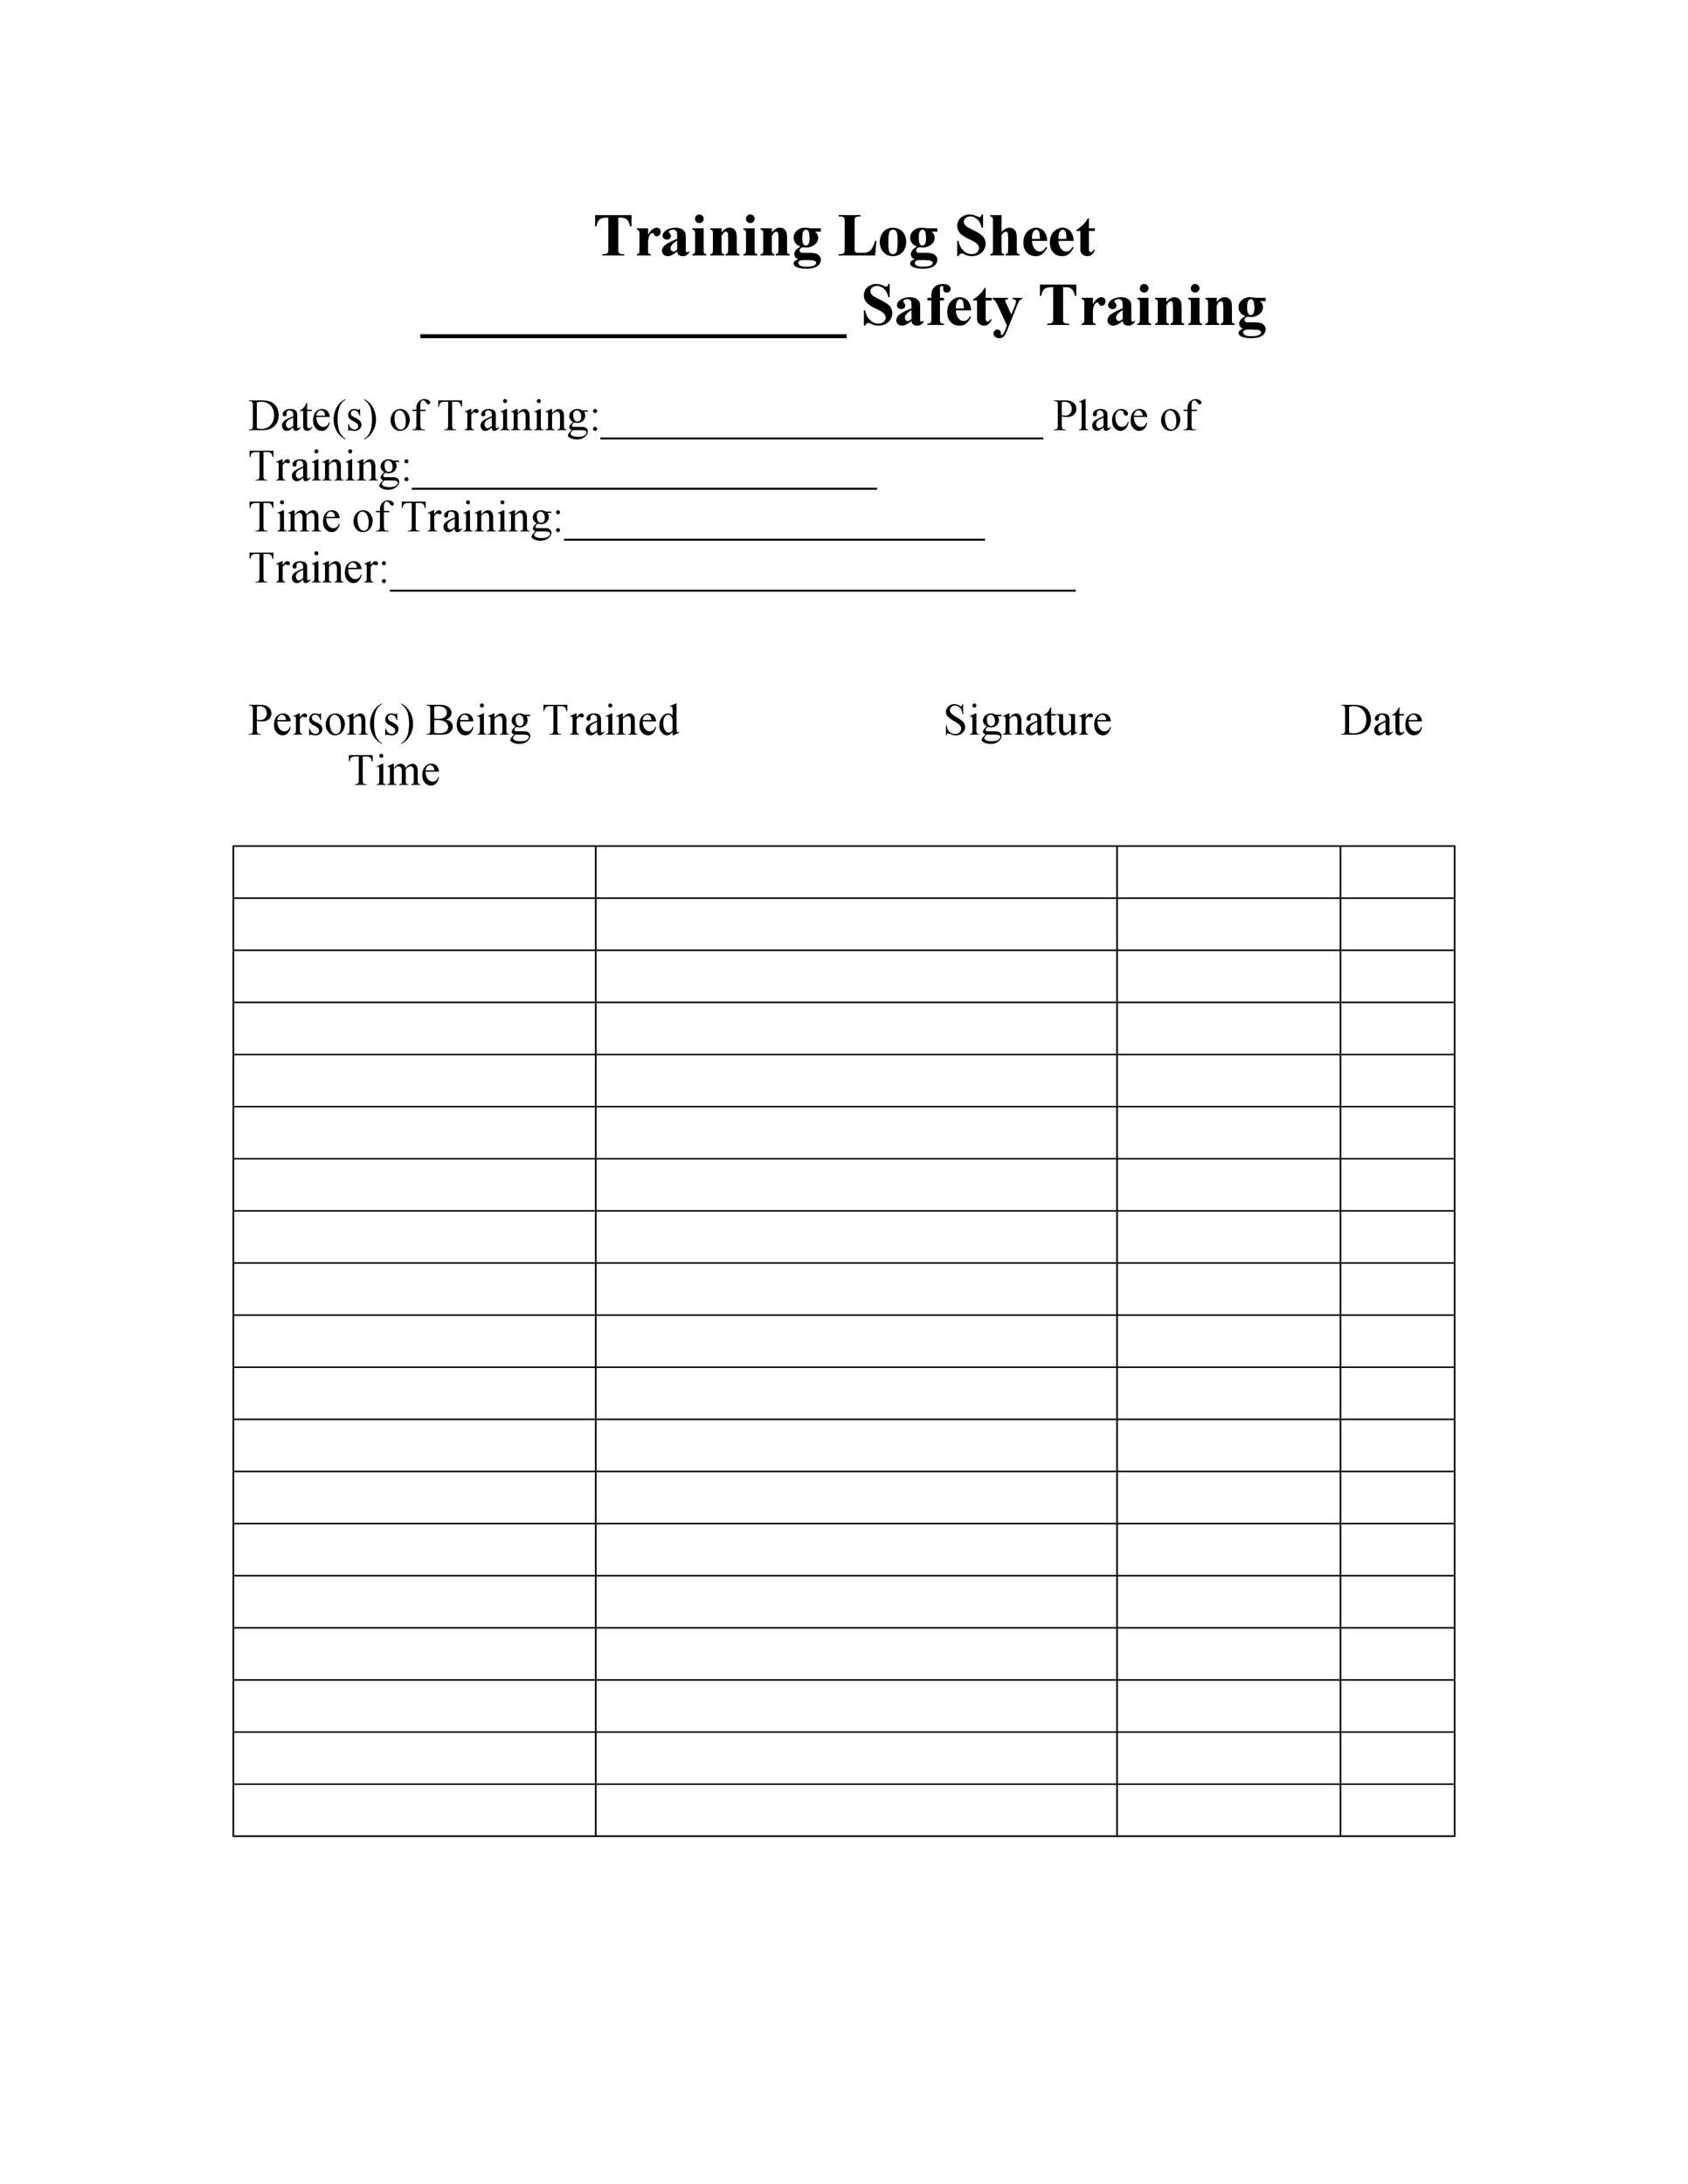 It's just an image of Agile Free Printable Log Sheets